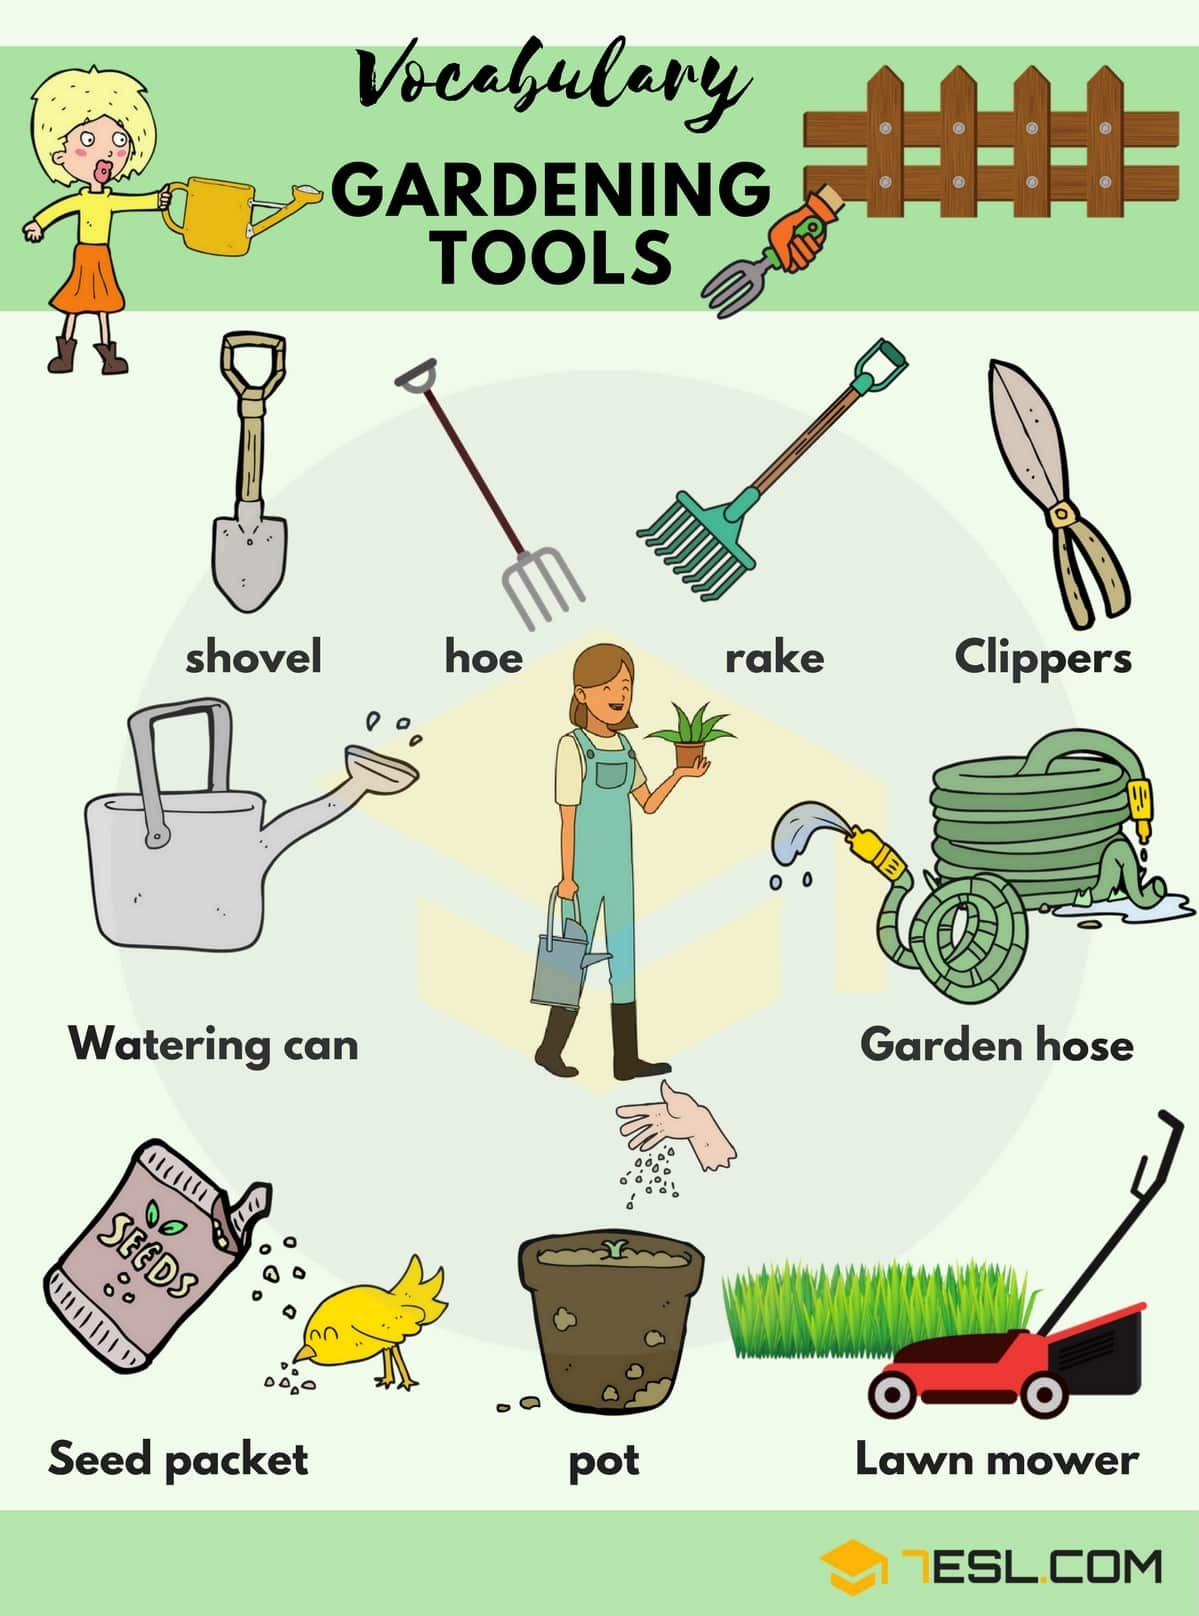 Tools And Equipment Vocabulary In English